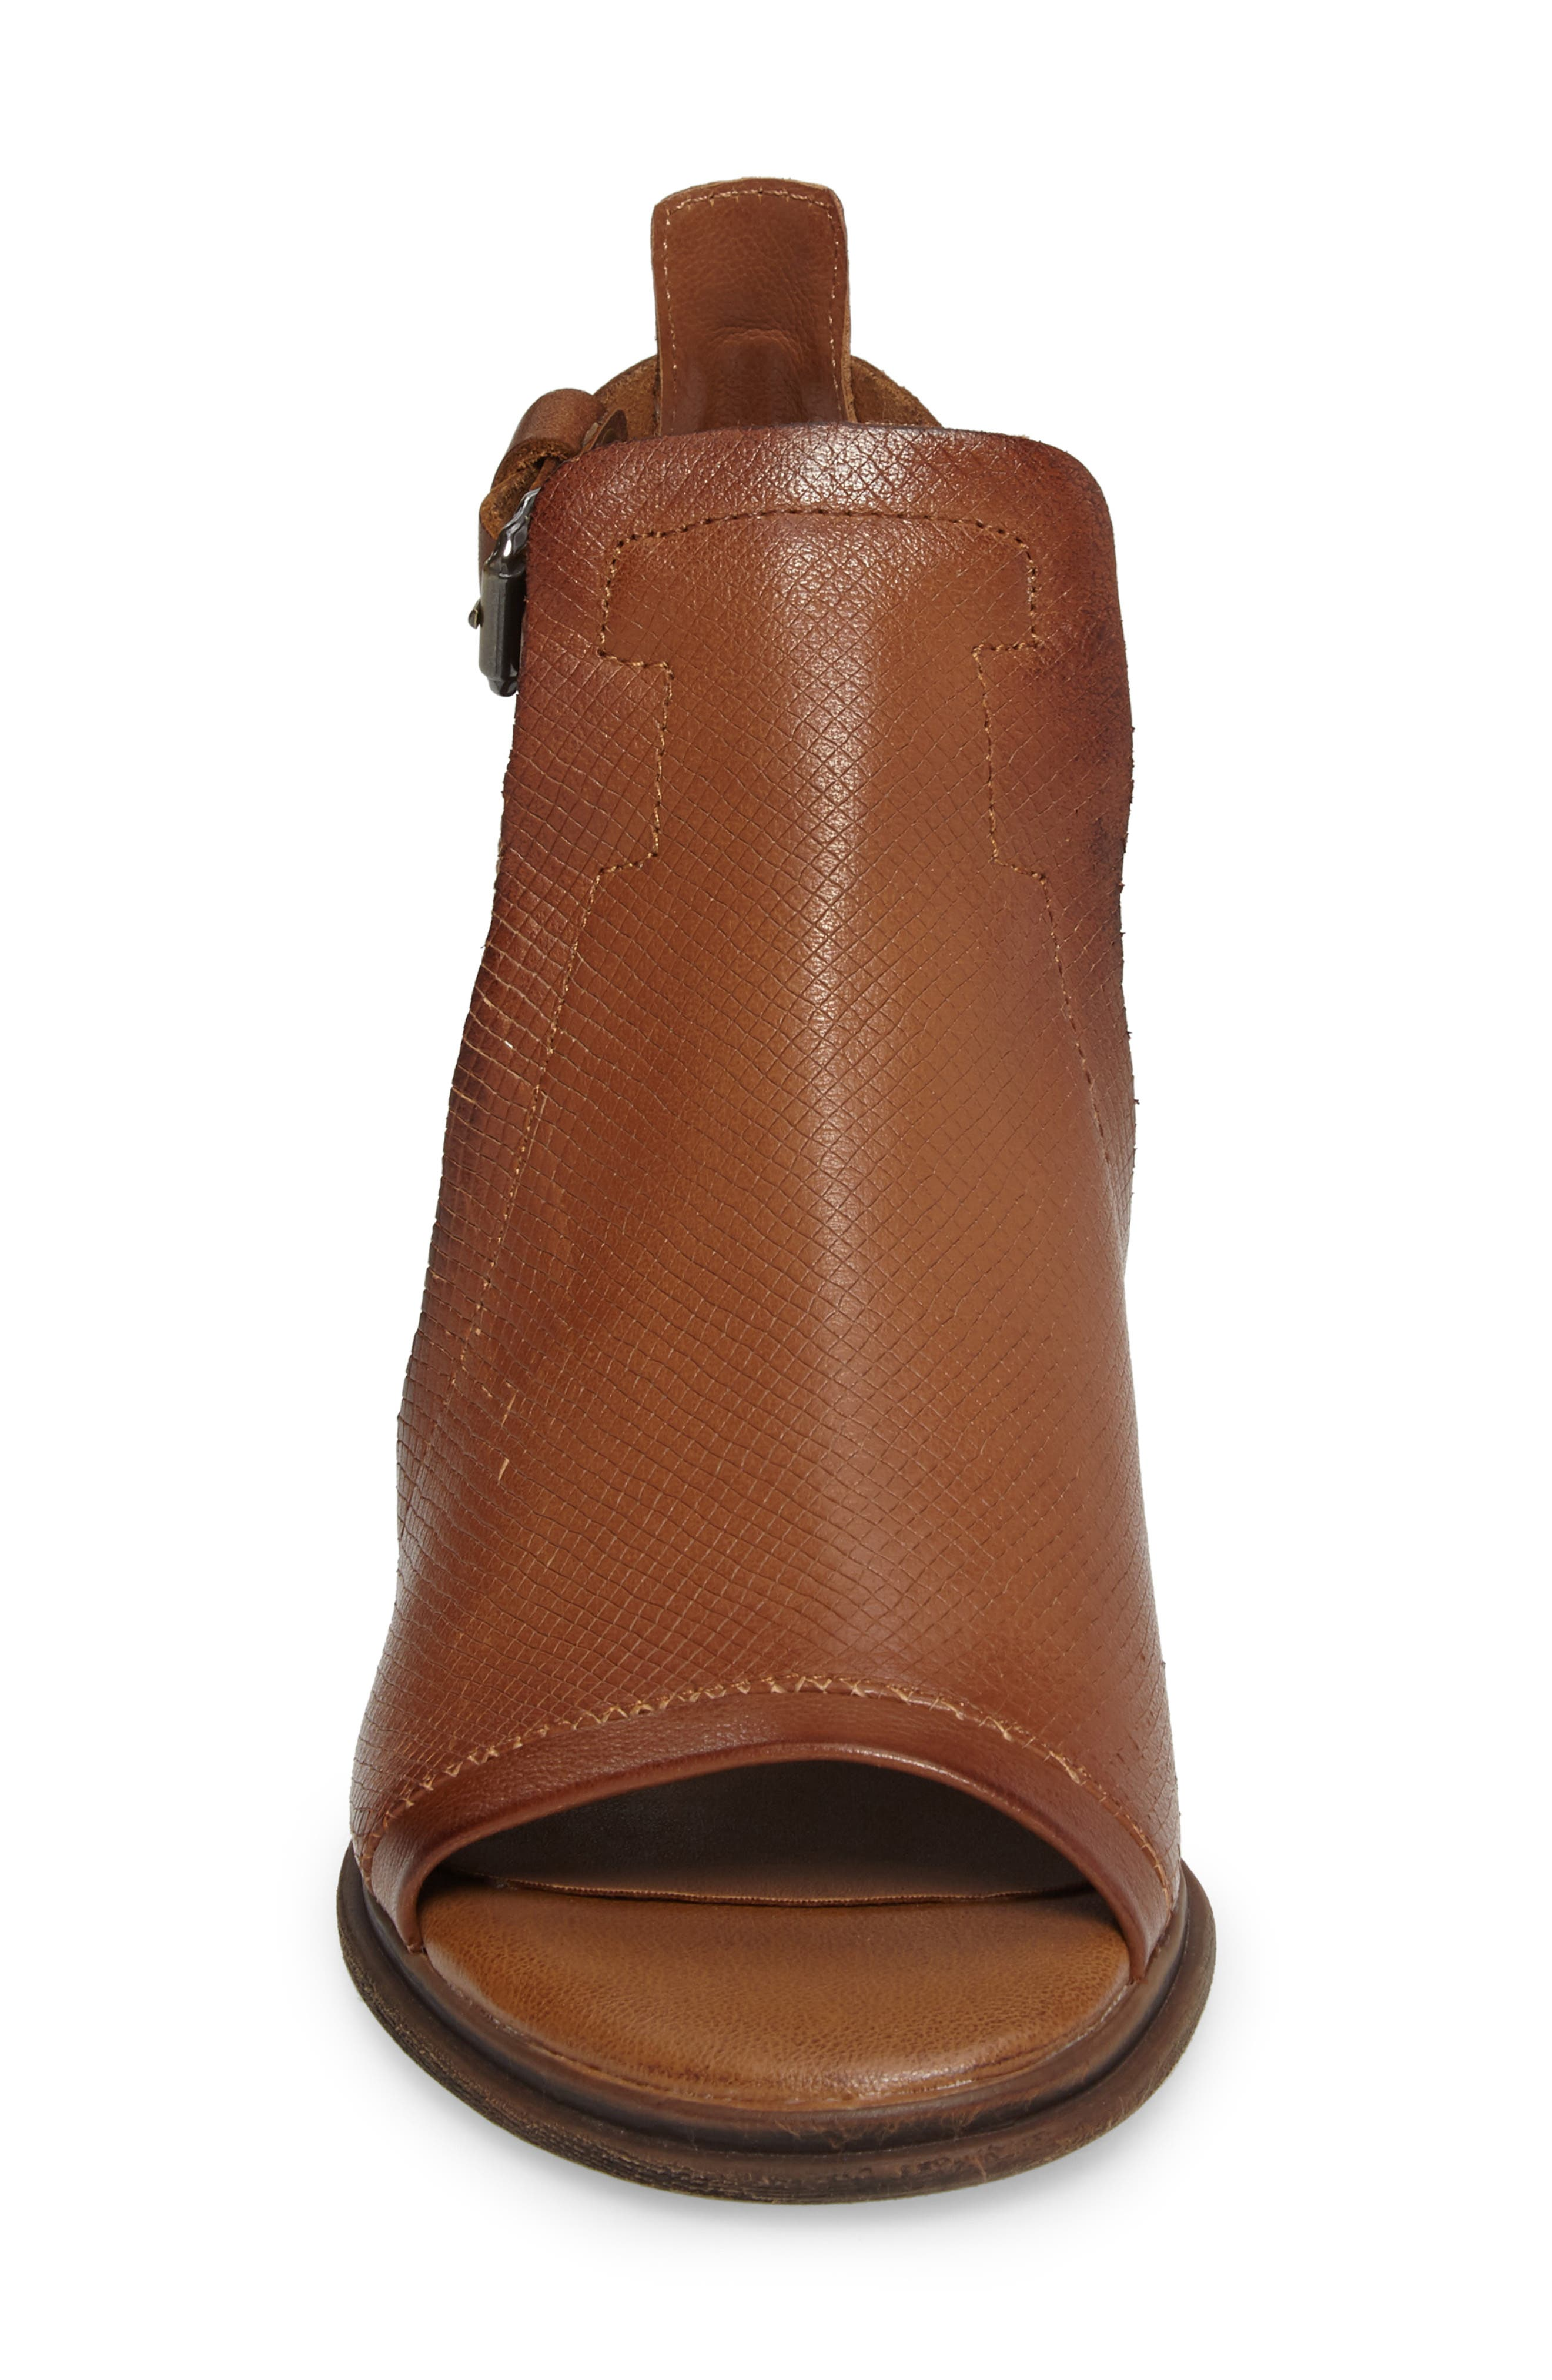 Metaphor Open Side Bootie,                             Alternate thumbnail 4, color,                             Medium Brown Leather